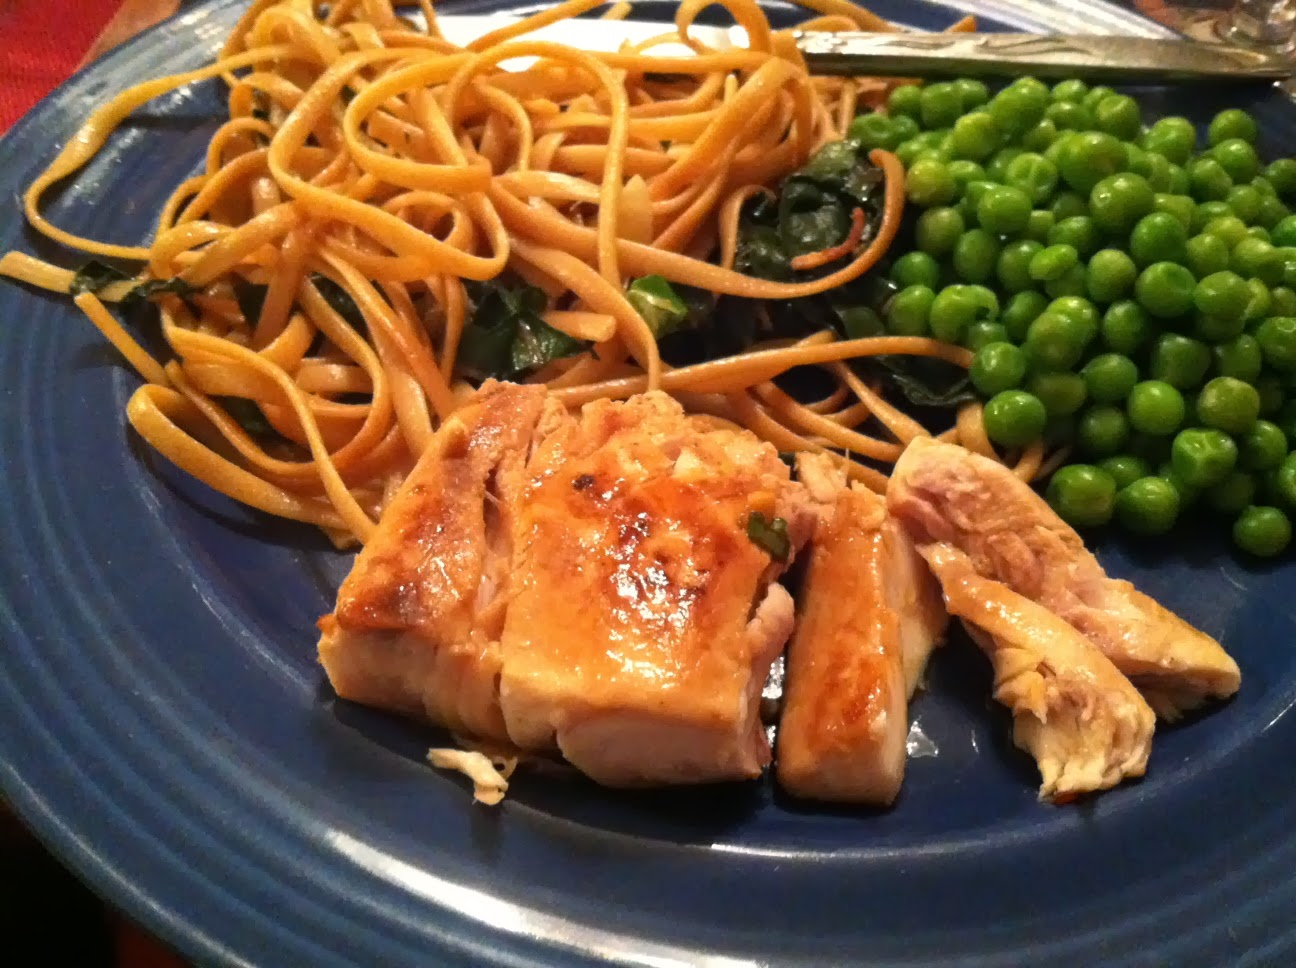 Pan-Seared Mahi Mahi served with noodles and peas